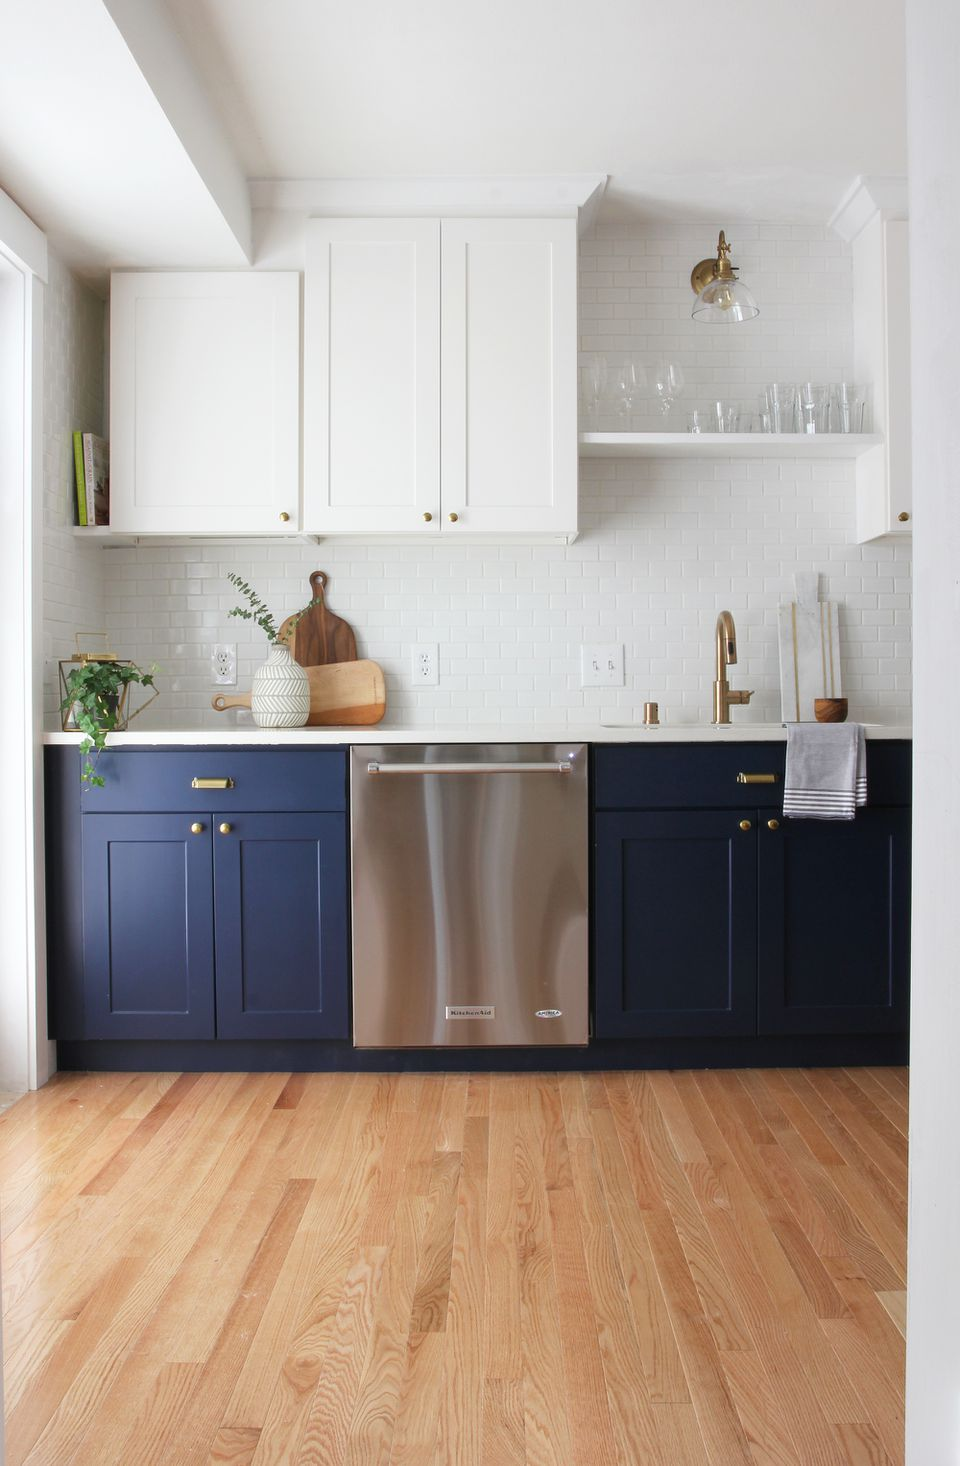 Blue cabinets in kitchen, Sherwin-Williams Naval SW 6244